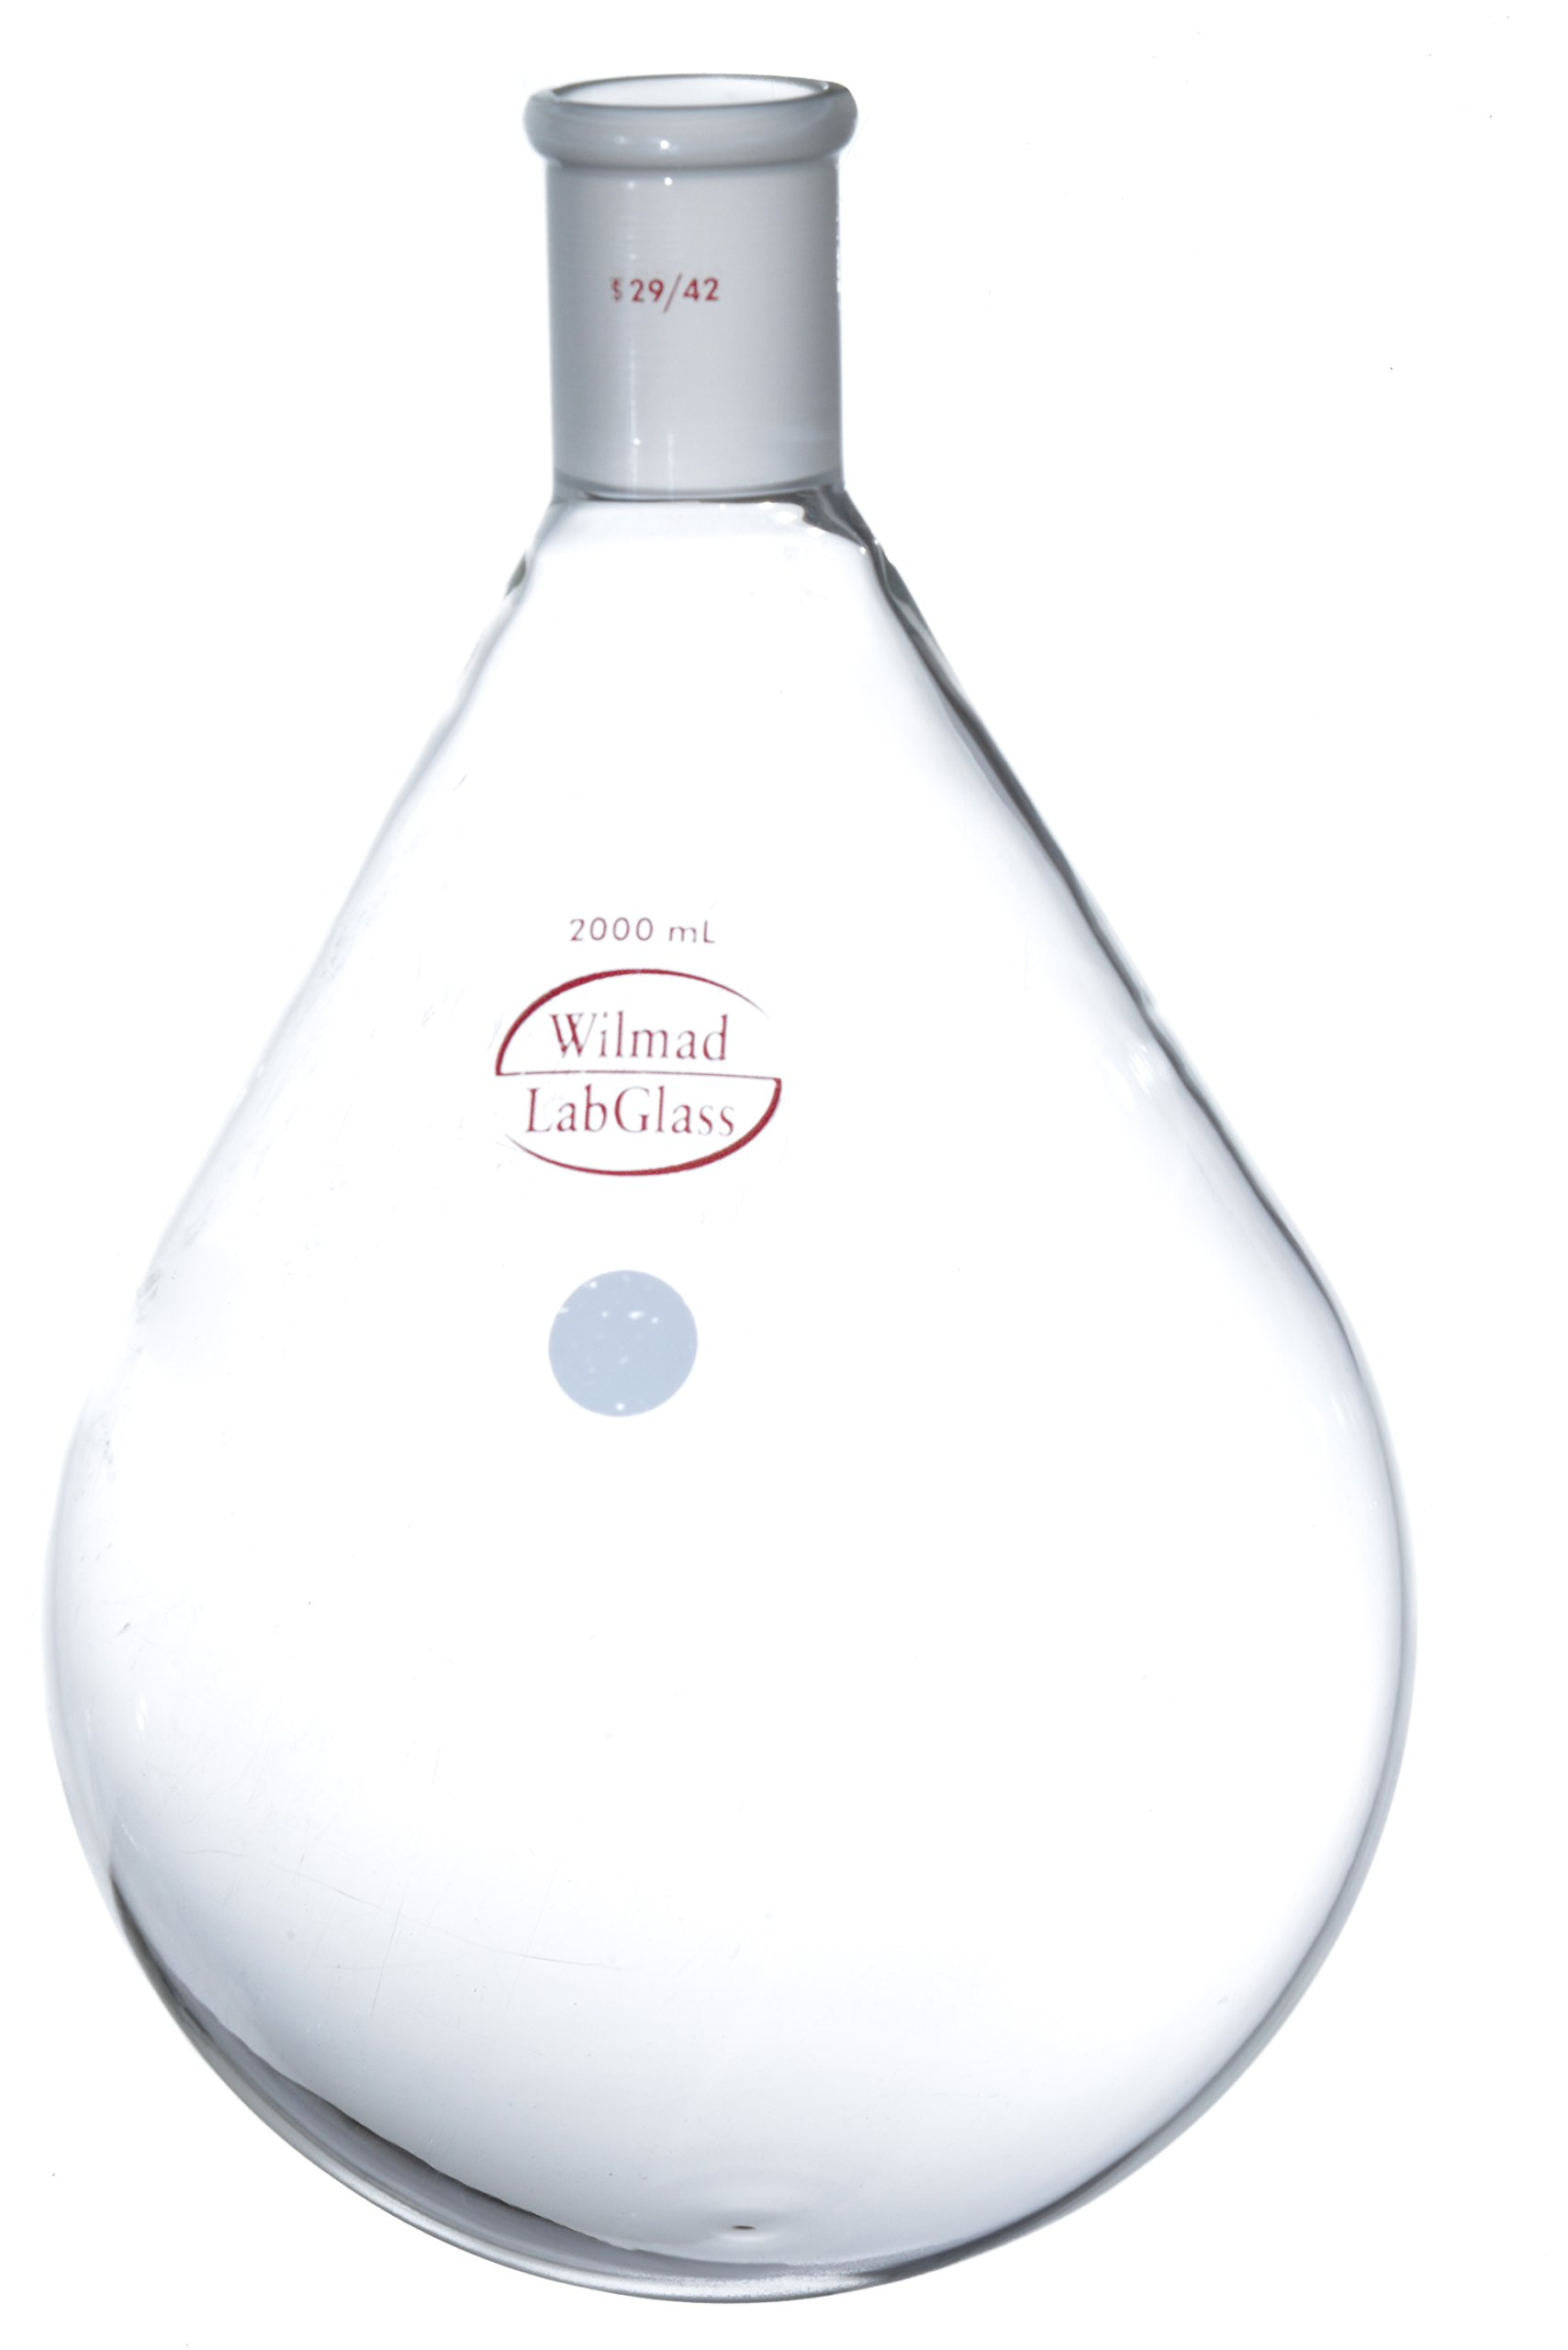 Wilmad LG-7245-130 Borosilicate Glass Recovery Flask, 2000 mL Capacity, 29/42 Standard Taper Joint by SP Scienceware